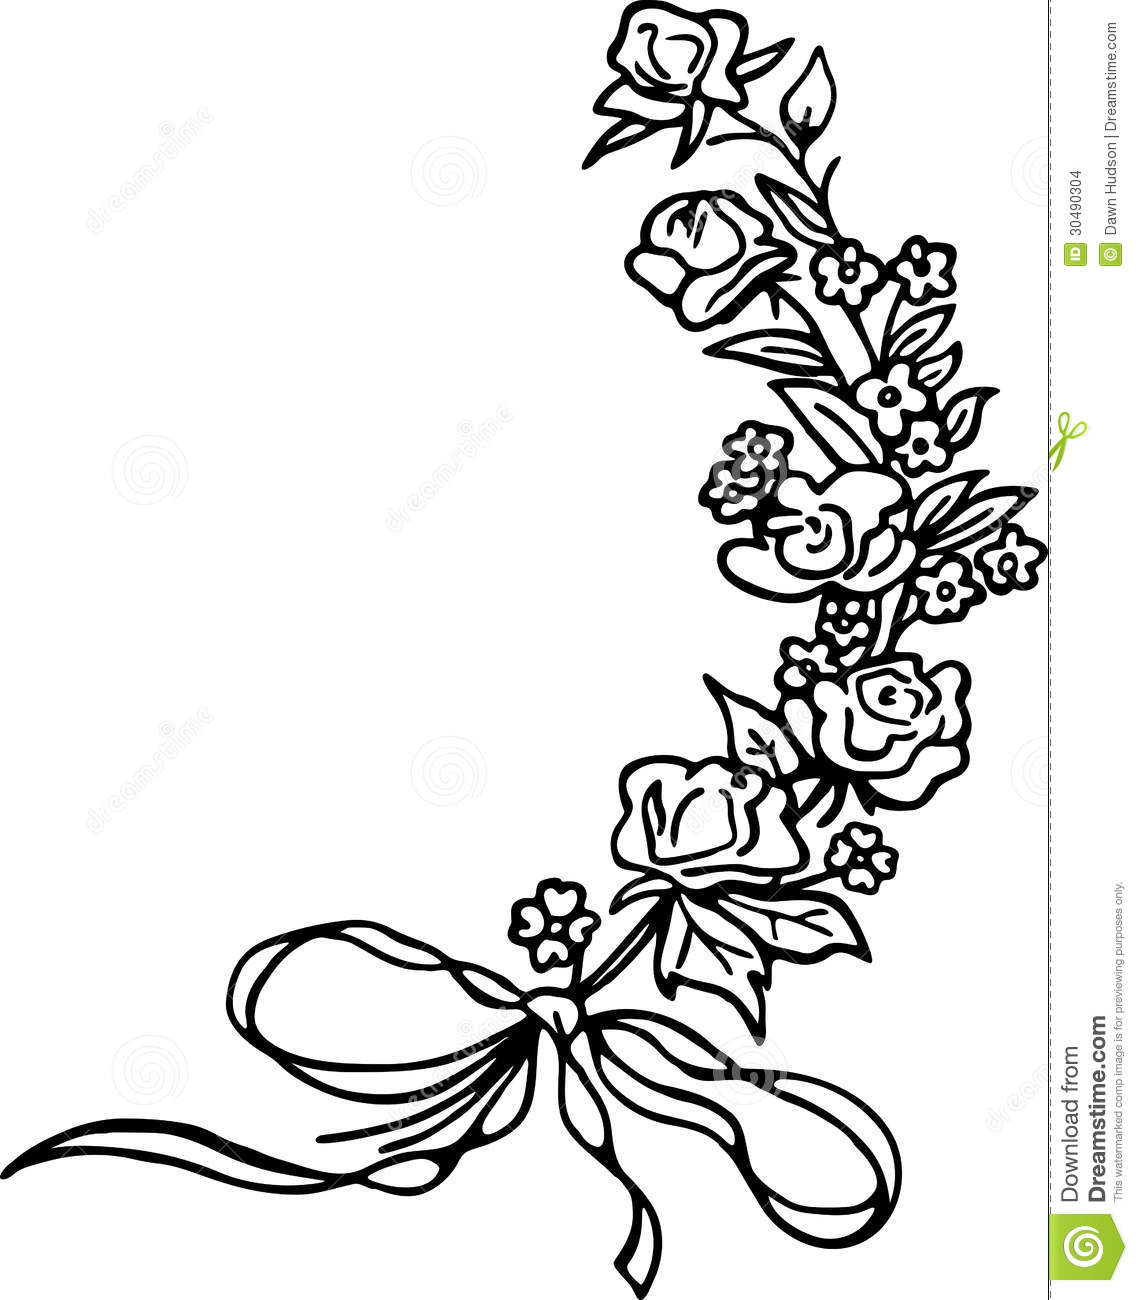 Line Drawing Of A Rose : Rose sprig stock images image